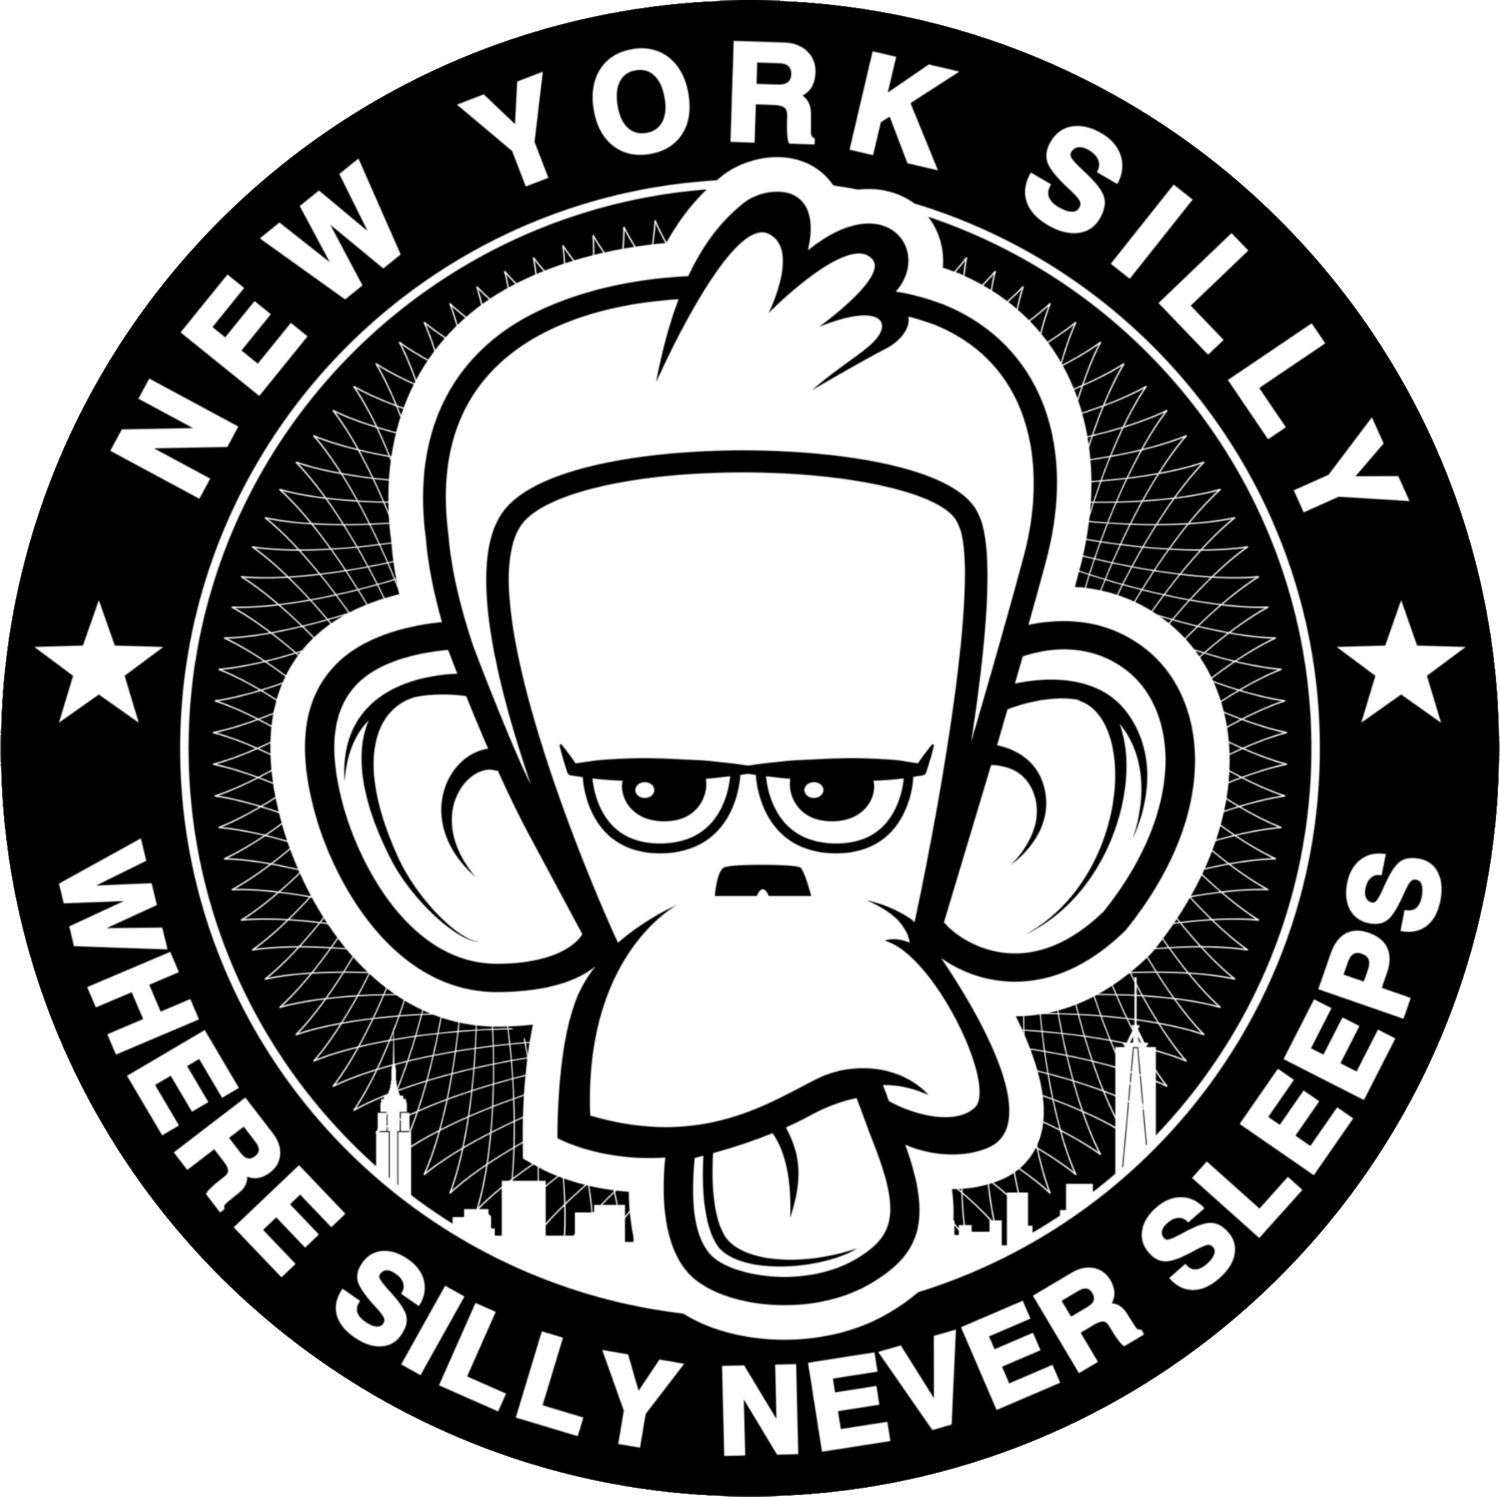 New York Silly Entertainment